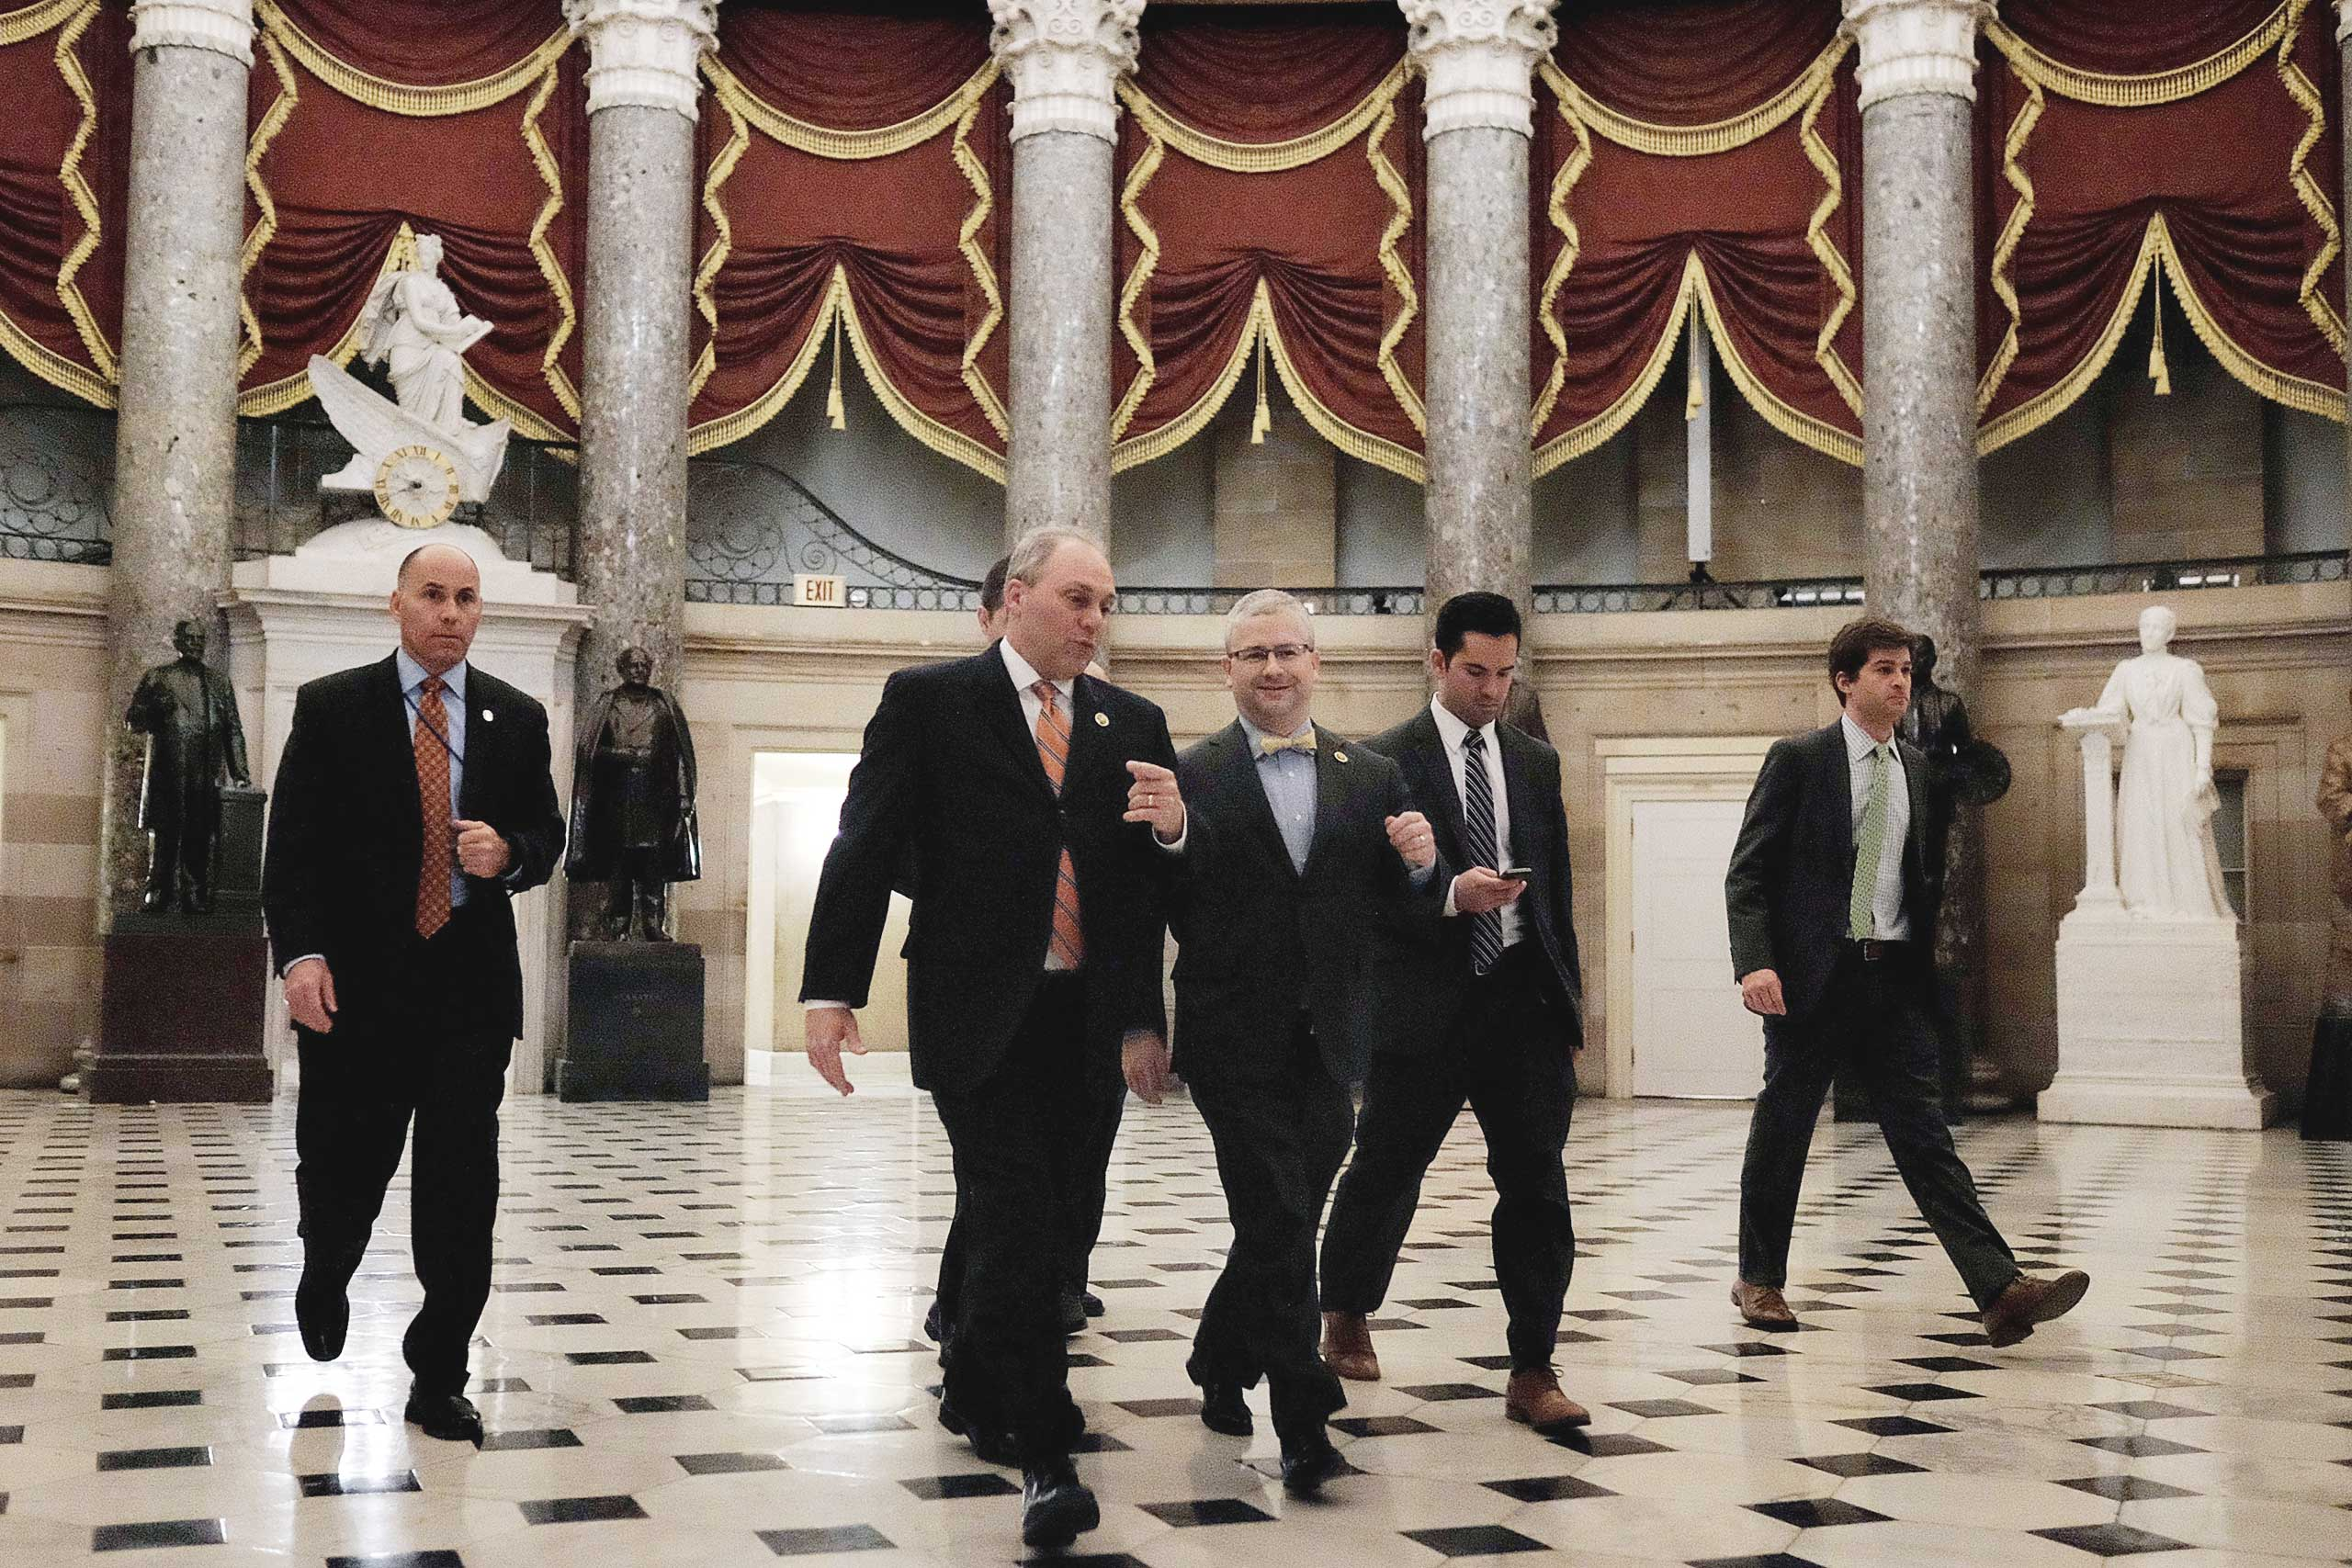 House Majority Whip Rep. Steve Scalise (R-LA), second from left, walks with Deputy Whip Rep. Patrick McHenry (R-NC), at center, on their way to the House chamber to vote on a stopgap spending bill to fund the Department of Homeland Security at the U.S. Capitol on Feb. 27, 2015 in Washington, DC.